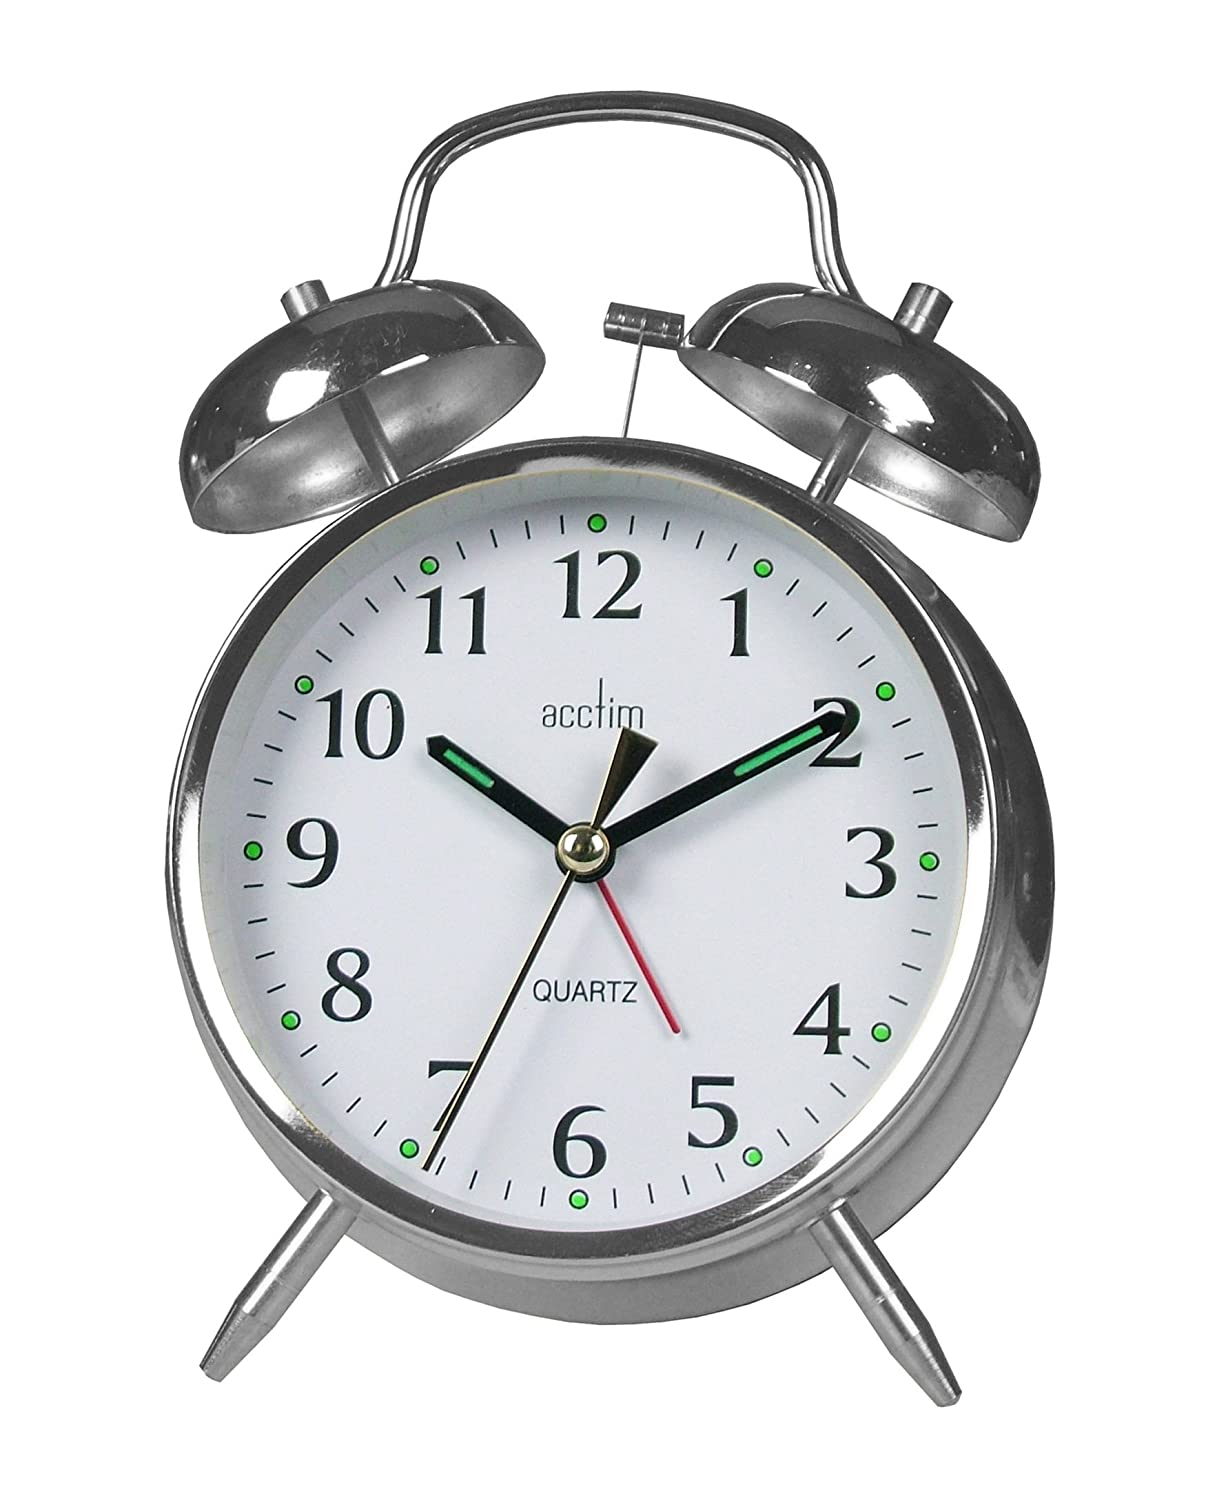 Acctim Traditional Quartz Alarm Clock, Chrome.This is a mechanical wind-up alarm clock which has an old-fashioned tick tock sound